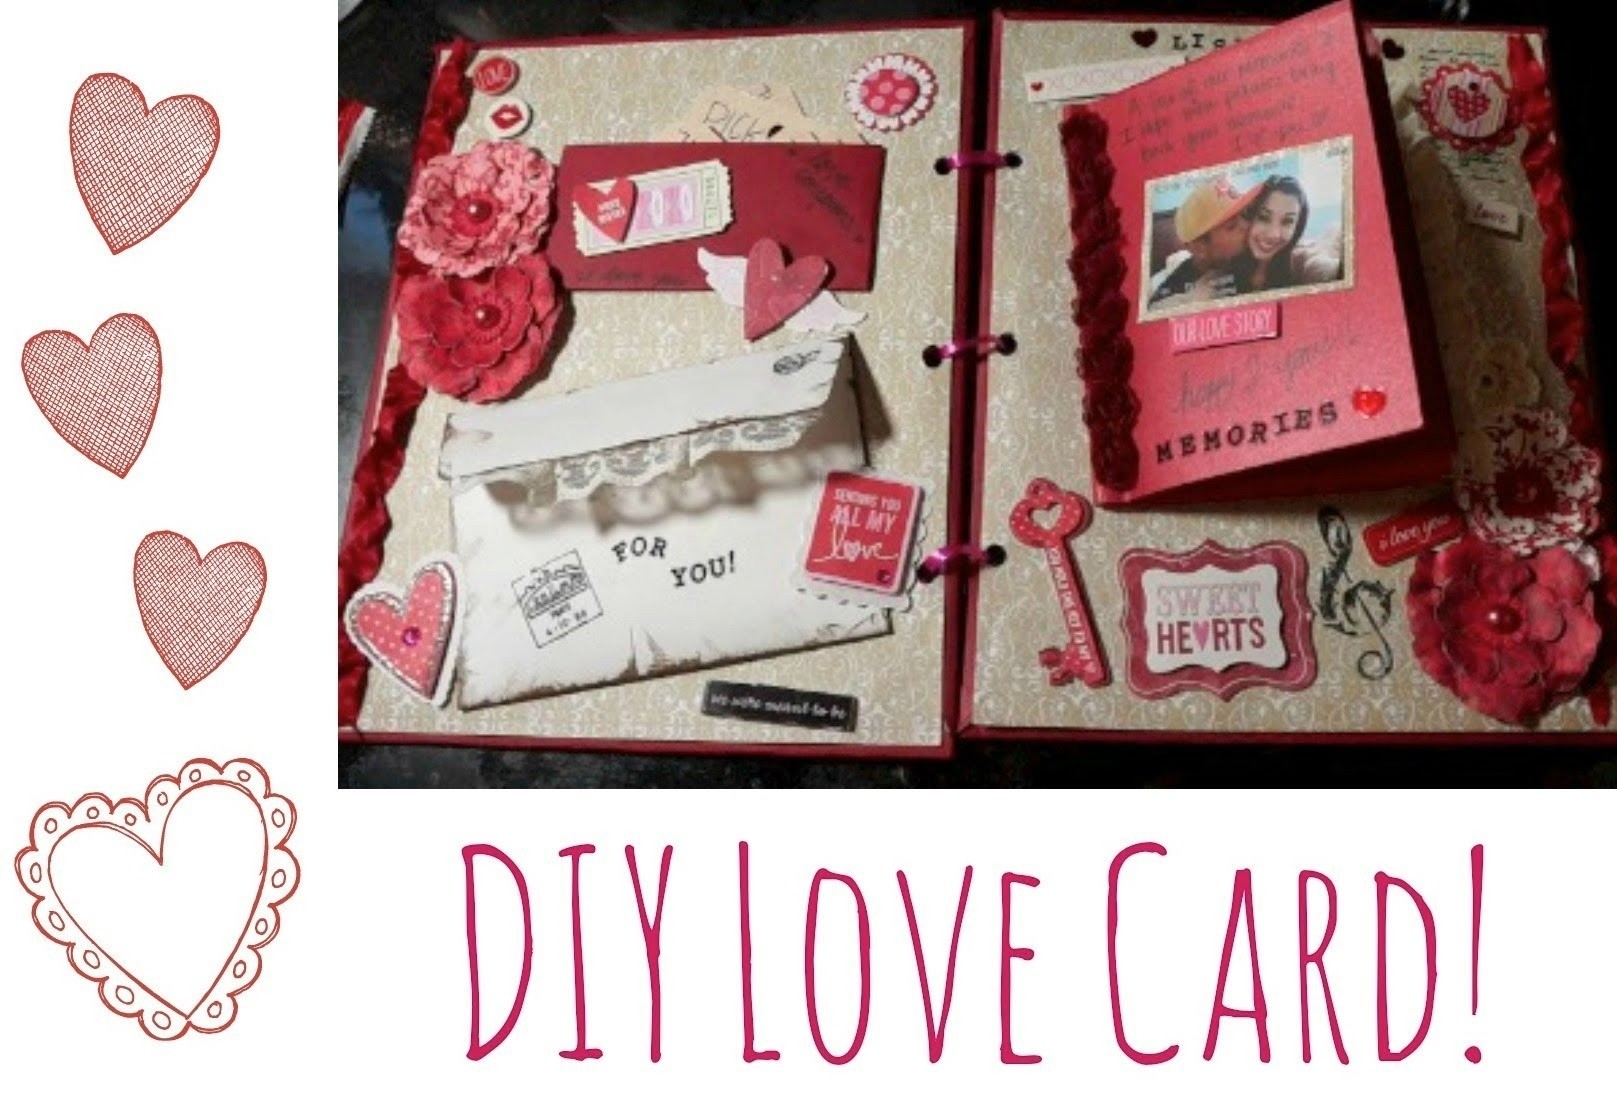 Love Cards For Him Handmade | Rudycoby throughout Love Cards For Him Handmade 28192